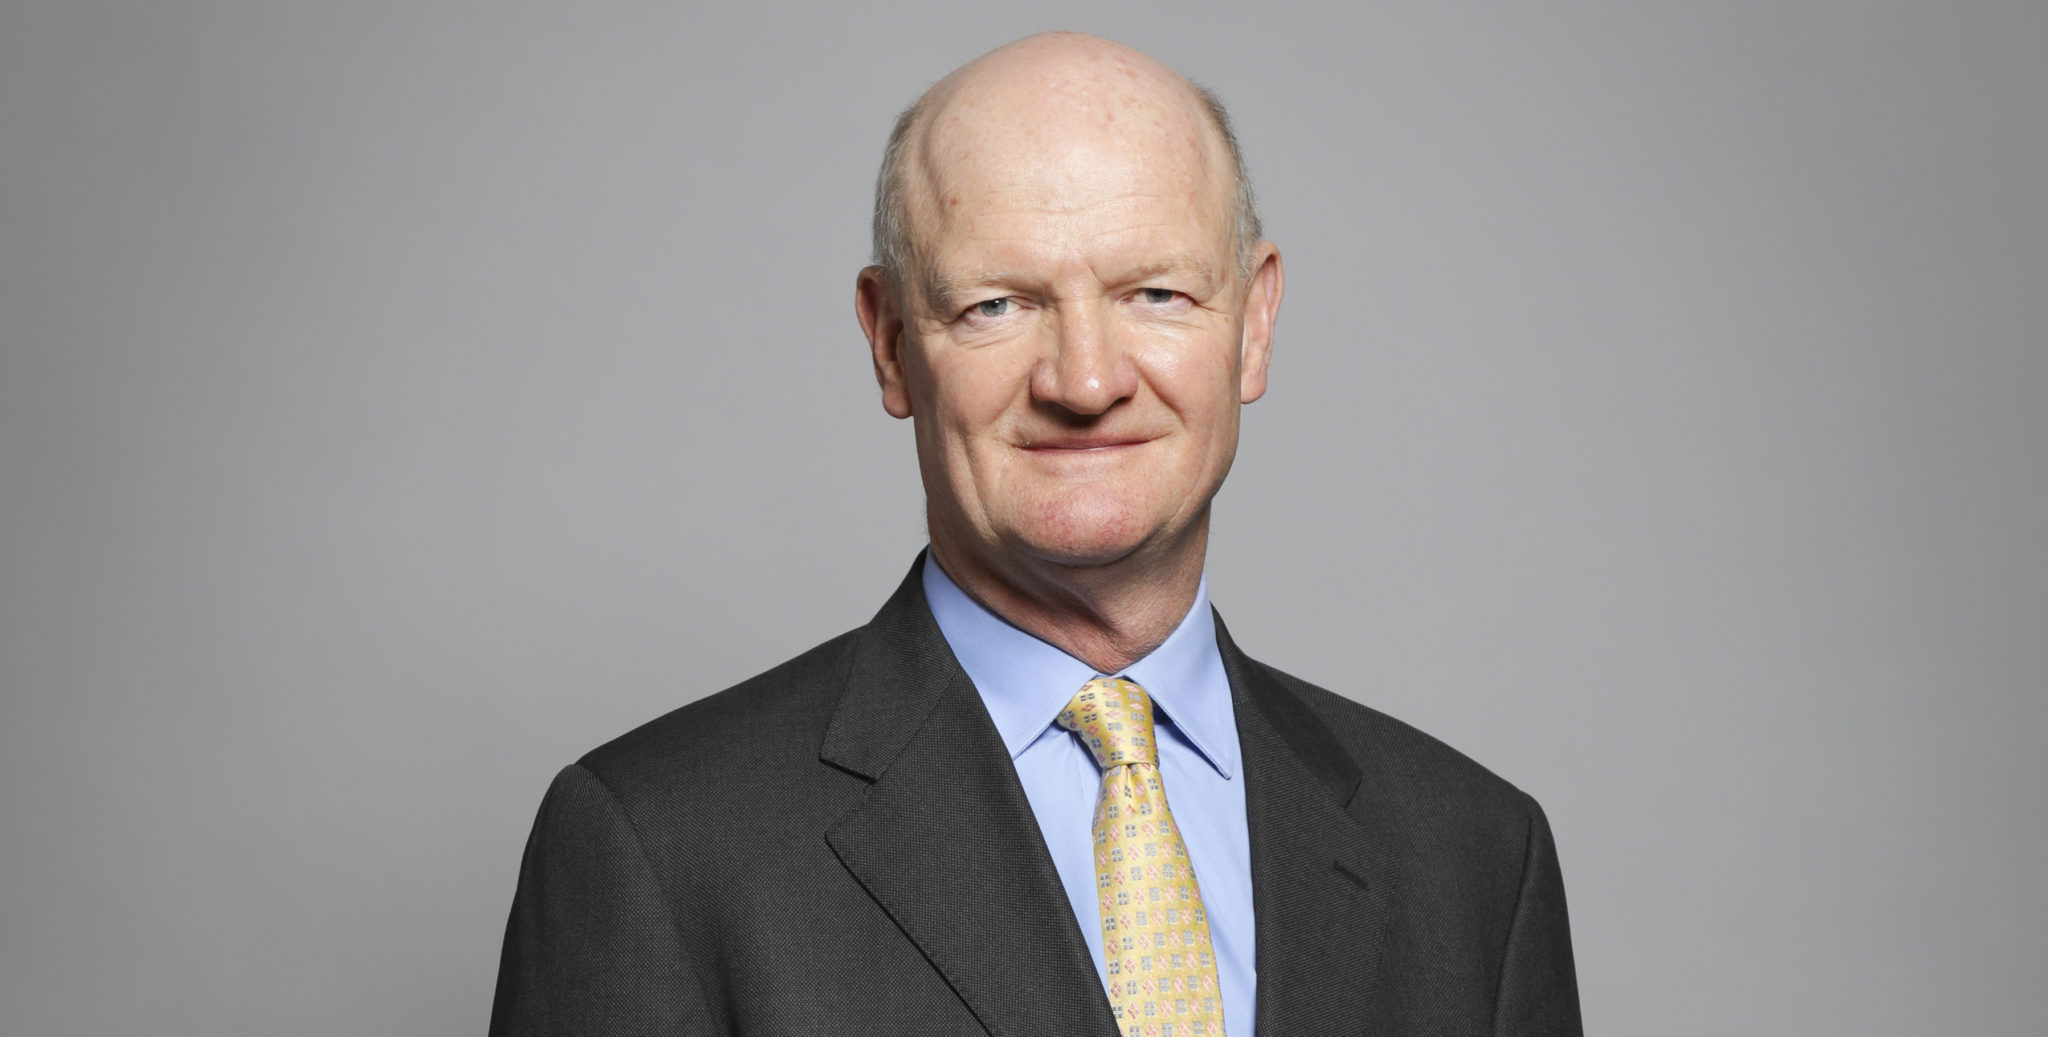 Student hardship- government funds insufficient and should increase, parliamentary committee says Lord Willetts